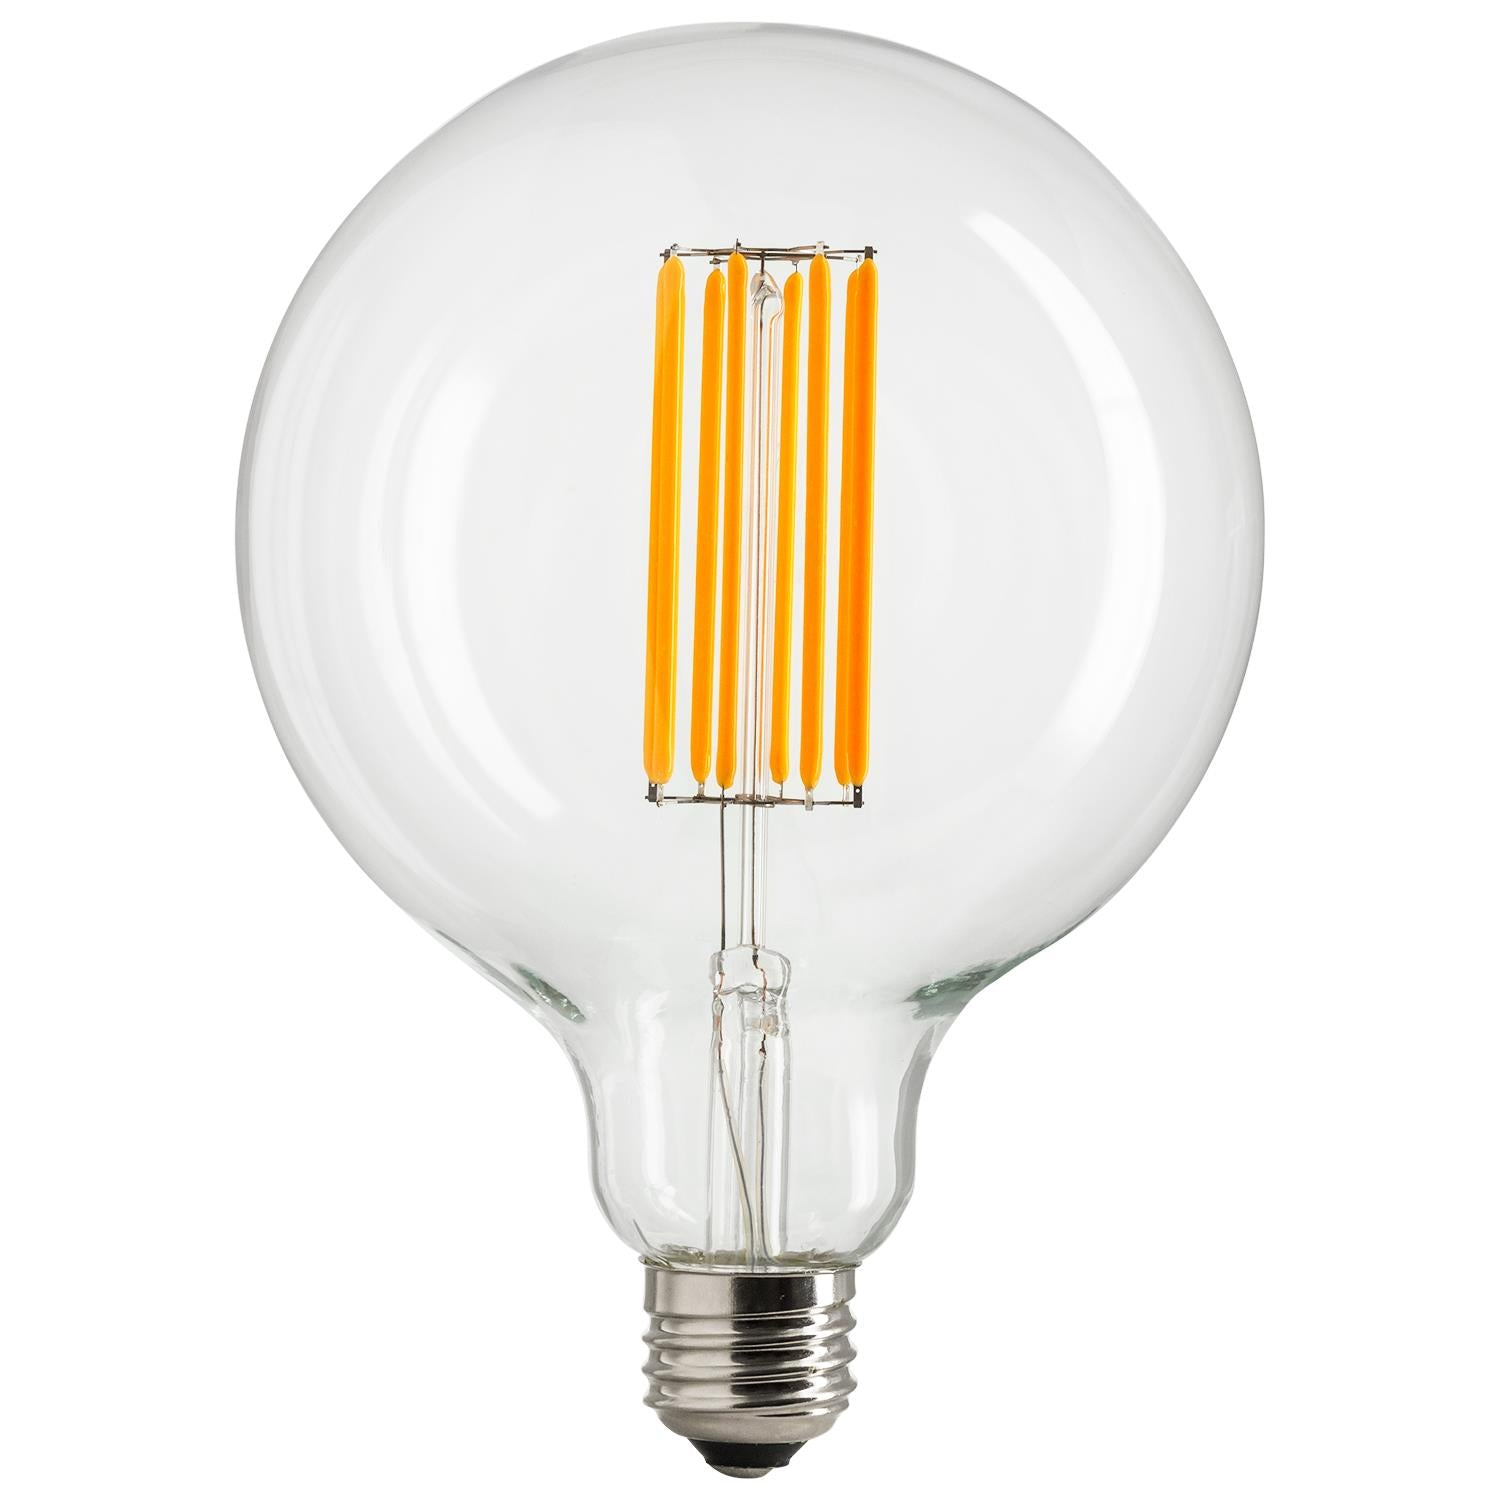 SUNLITE 80467-SU LED 8w Vintage Styled G40 Globe Light Bulbs Dimmable Warm White